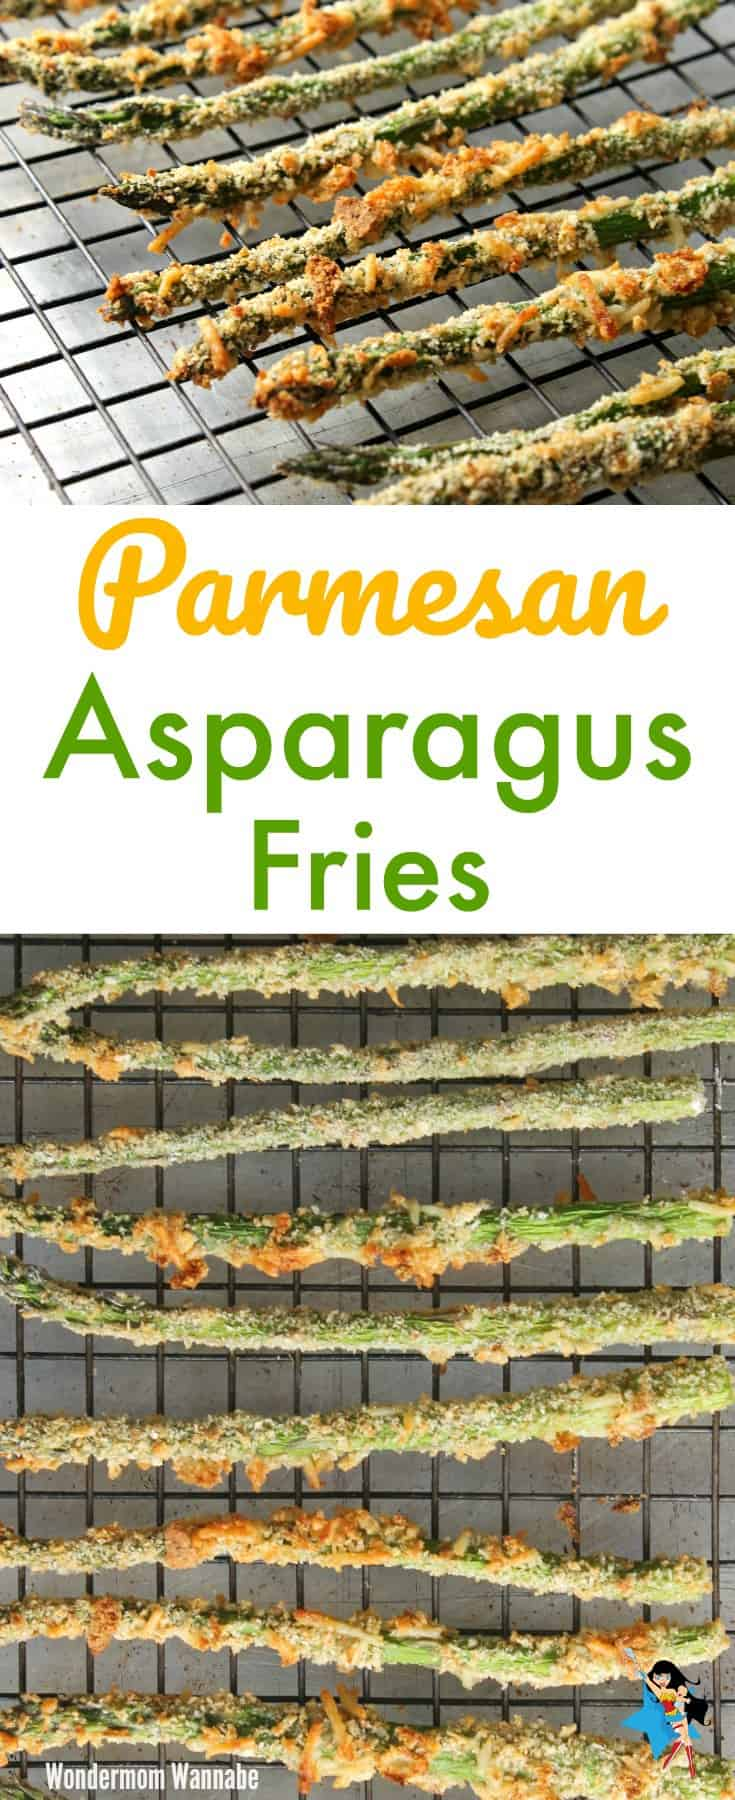 a collage of parmesan asparagus fries on a wire rack with title text reading Parmesan Asparagus Fries